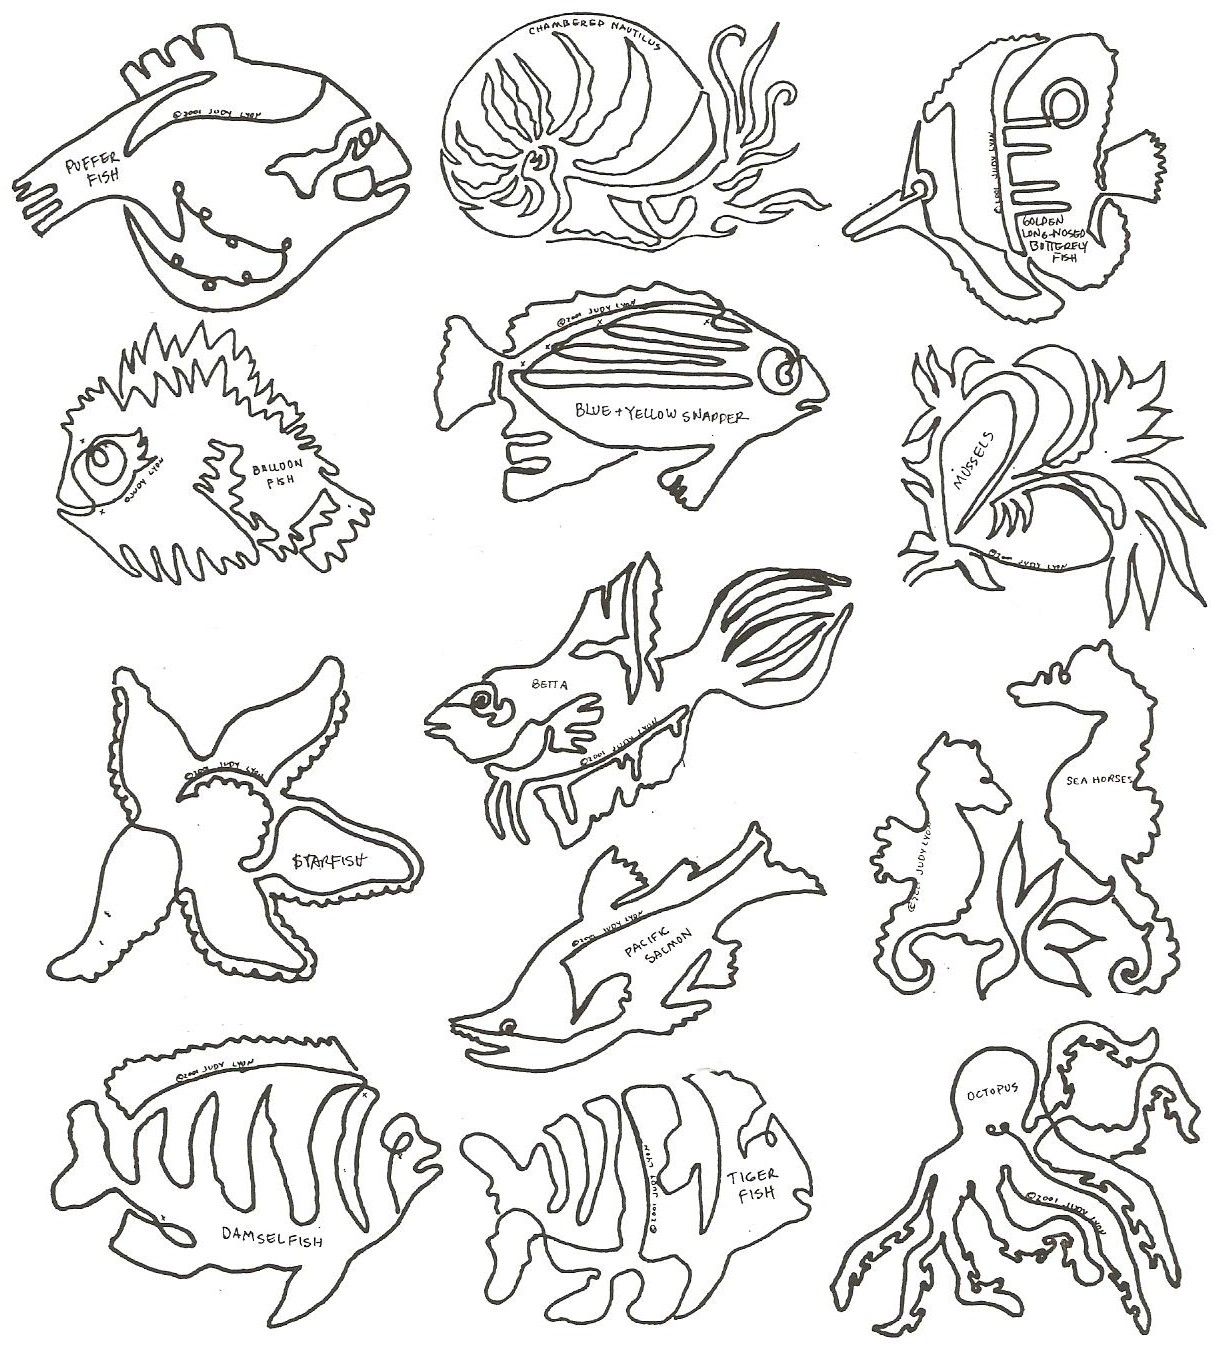 Fishy Business Block 1 - FBB1 - Collection of 12